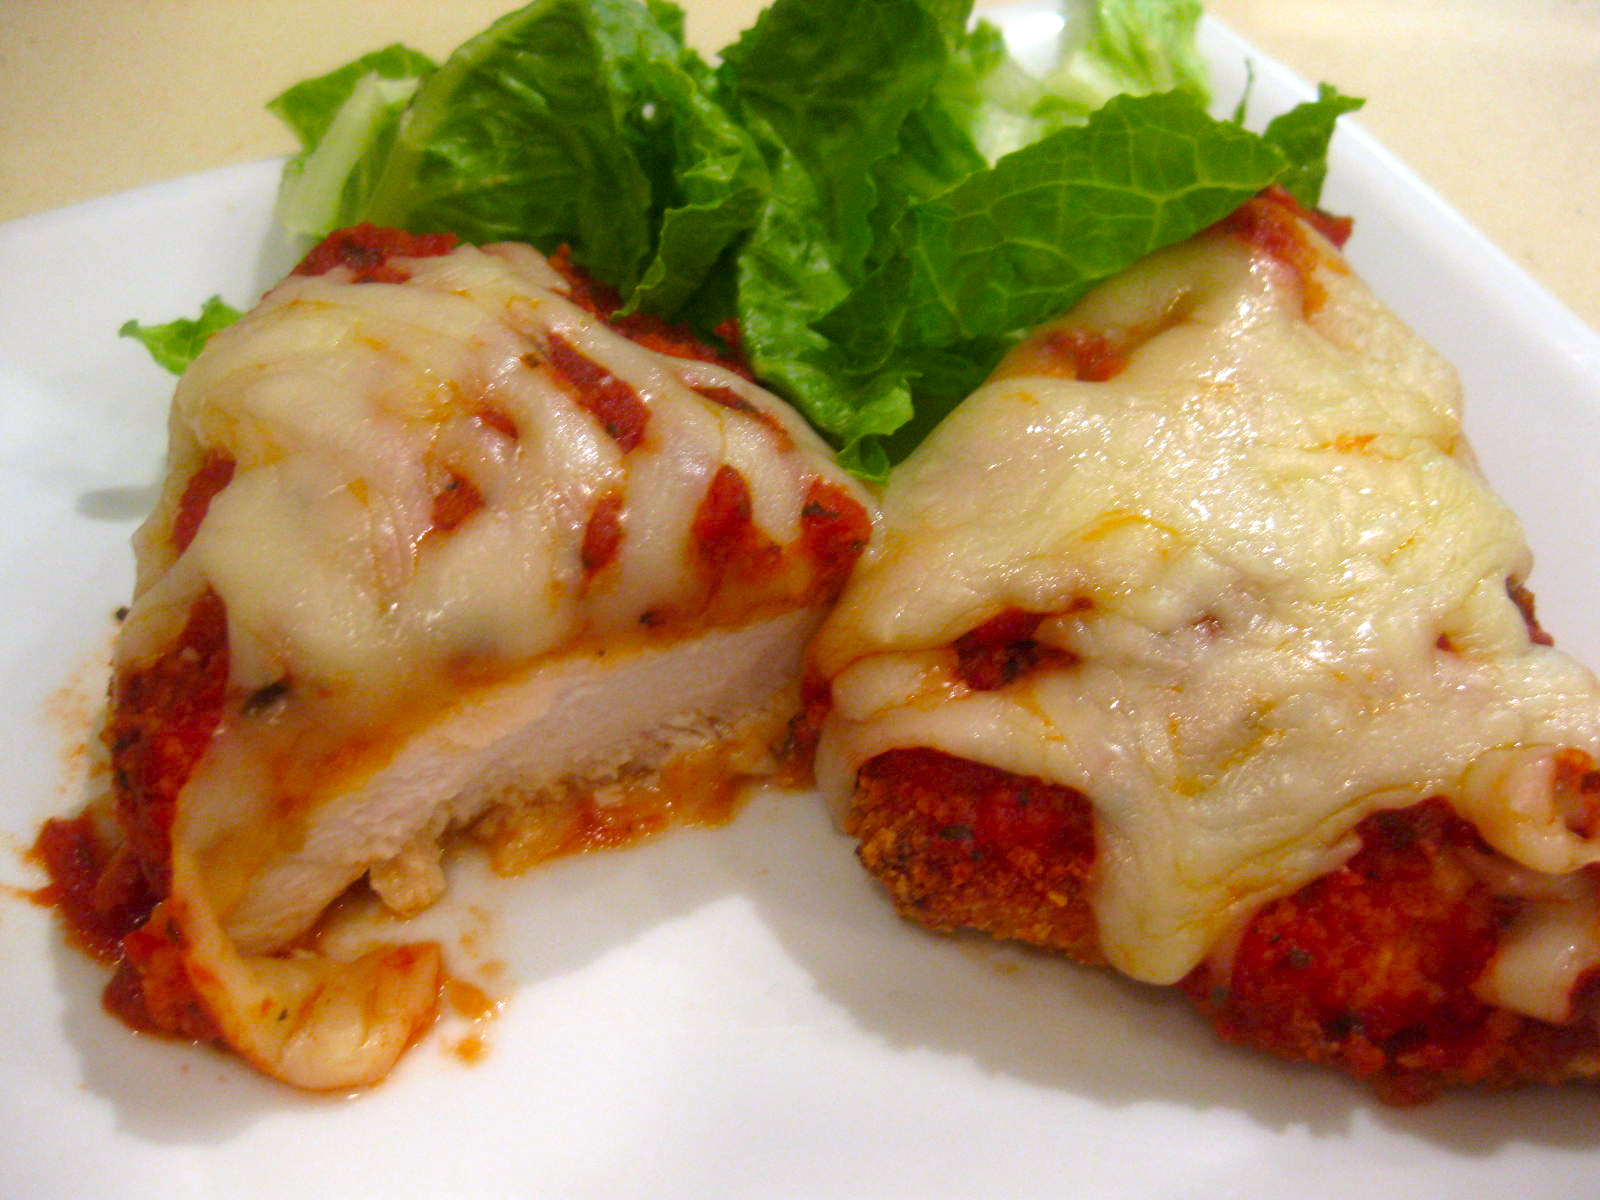 Vanilla & Lace: Baked Chicken Parmesan